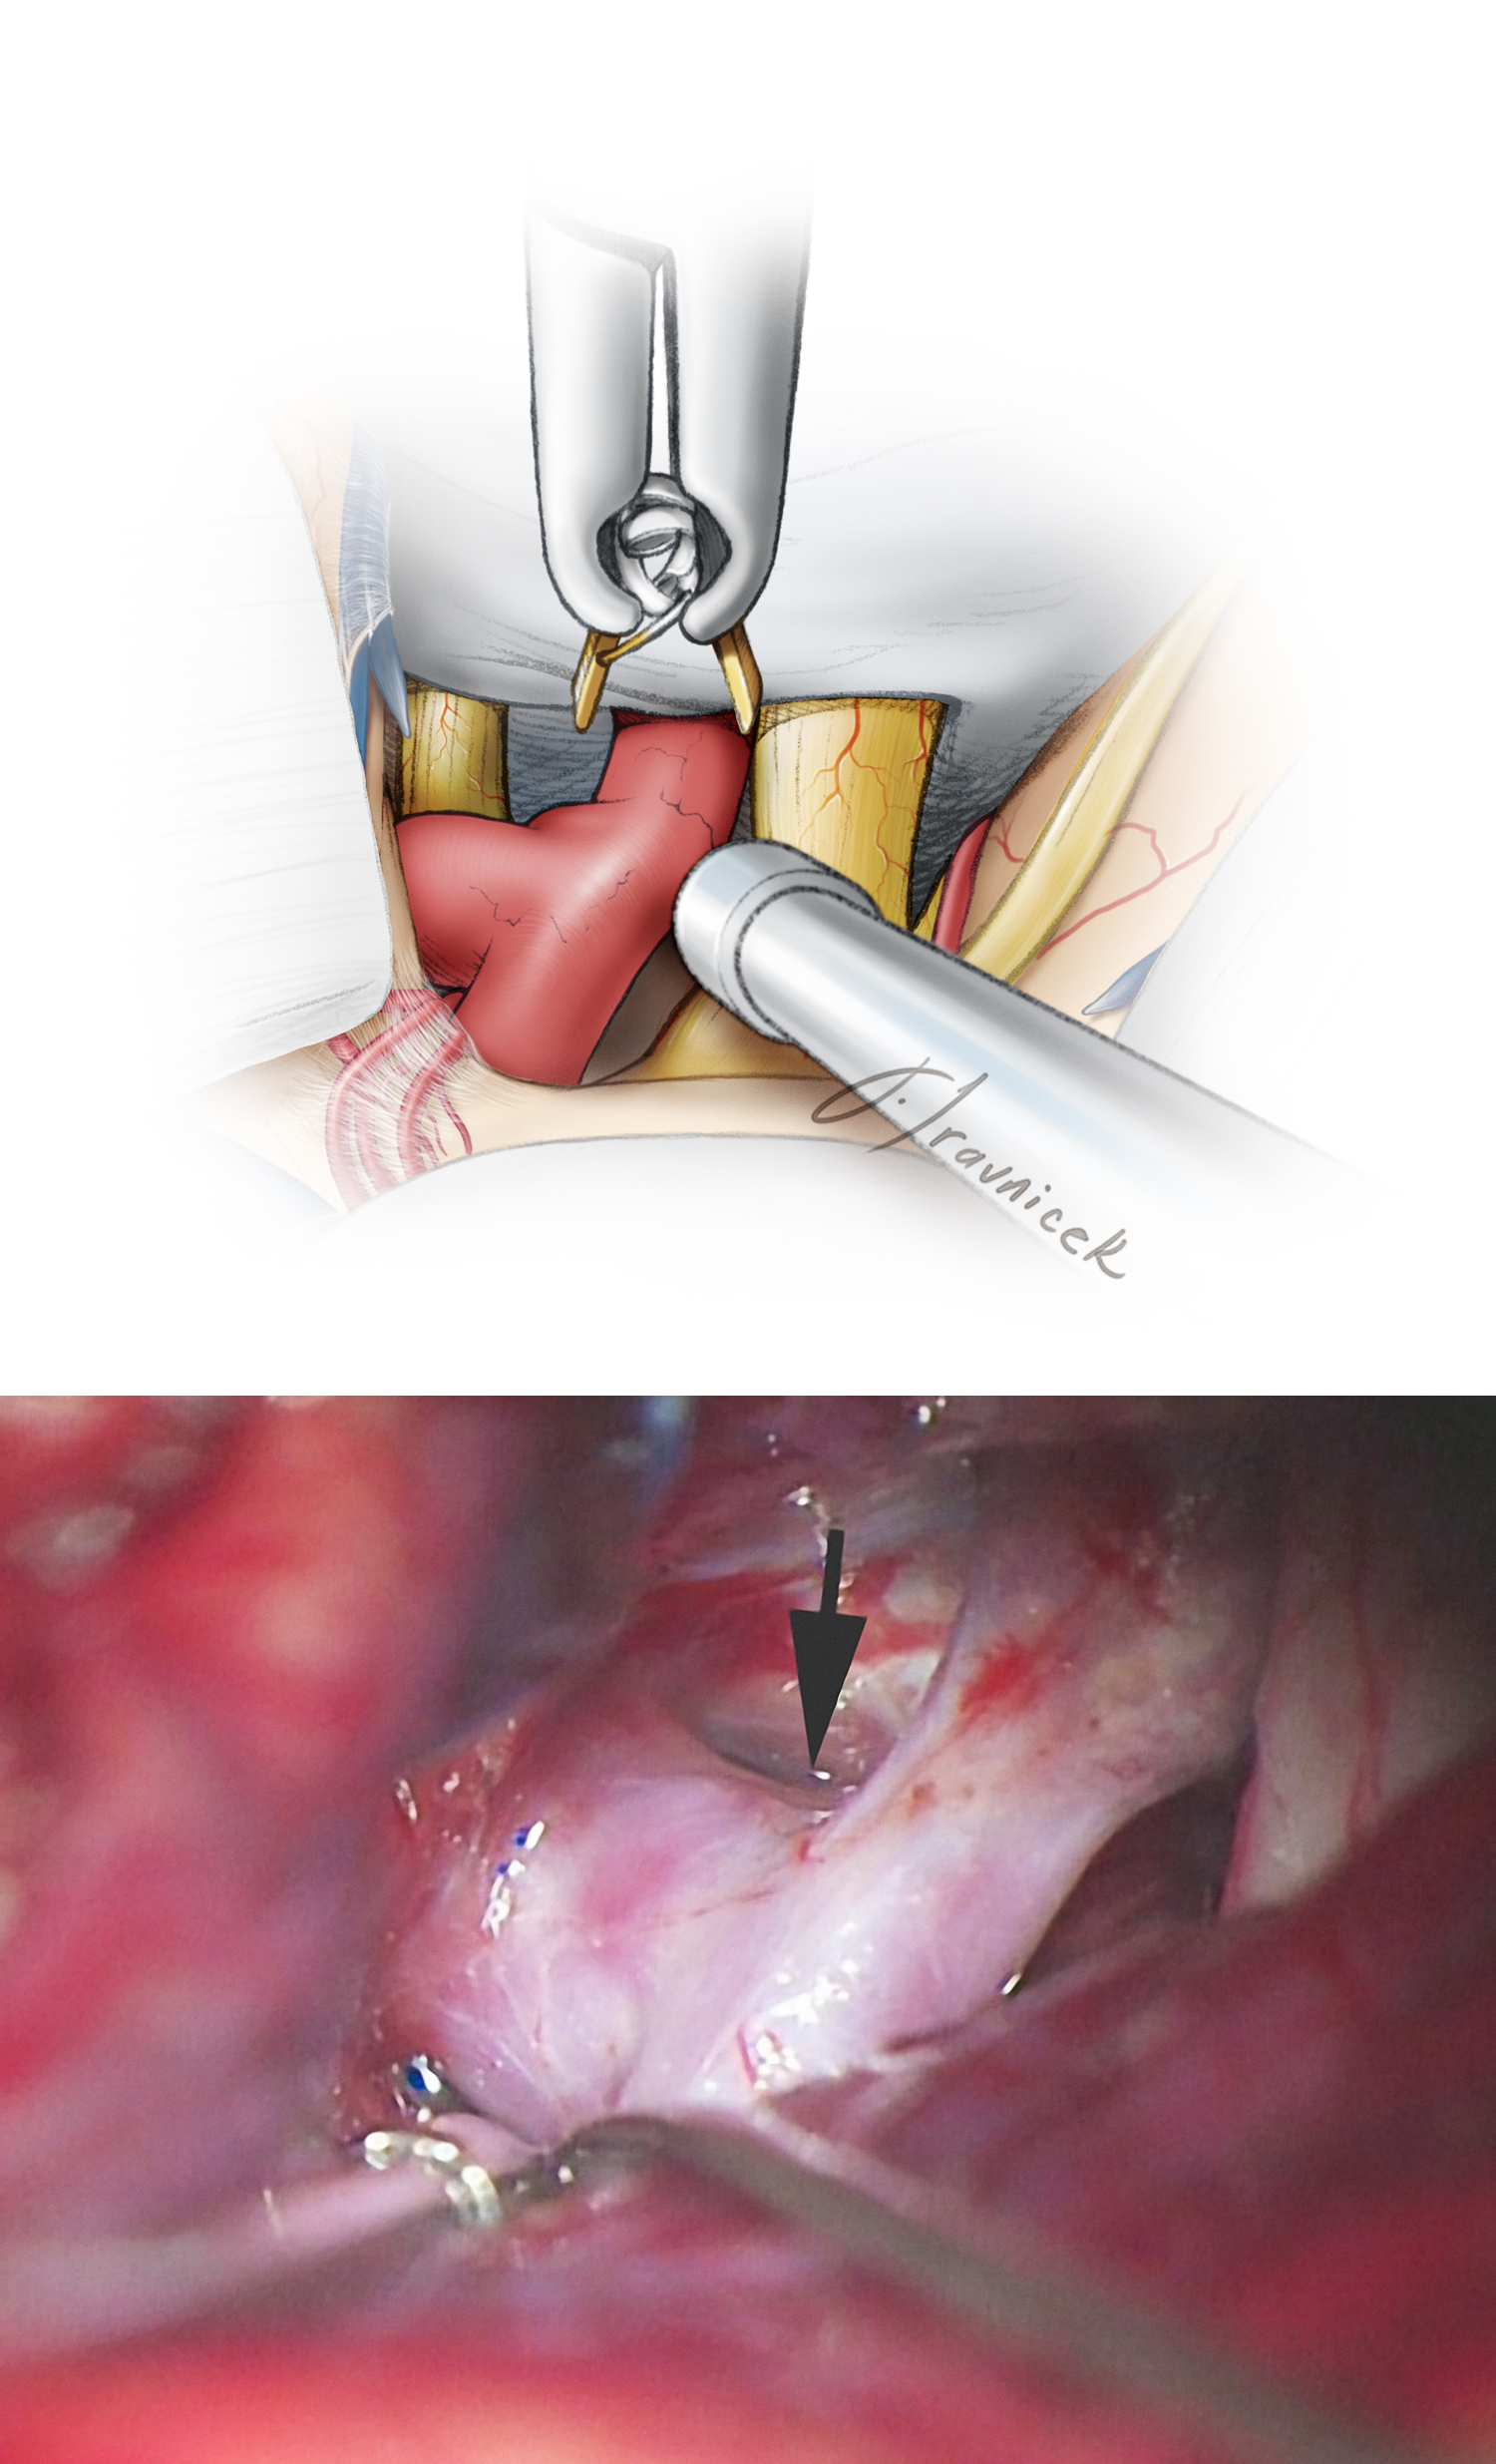 Figure 17: The origin of the PCoA is often apparent only as a small knuckle immediately inferior to the aneurysm sac (upper sketch.) The permanent clip is later placed between this knuckle (at the arrow, lower photo) and the true neck of the aneurysm. Temporary clip application is often necessary, especially for ruptured aneurysms, during the next steps of aneurysm neck dissection.